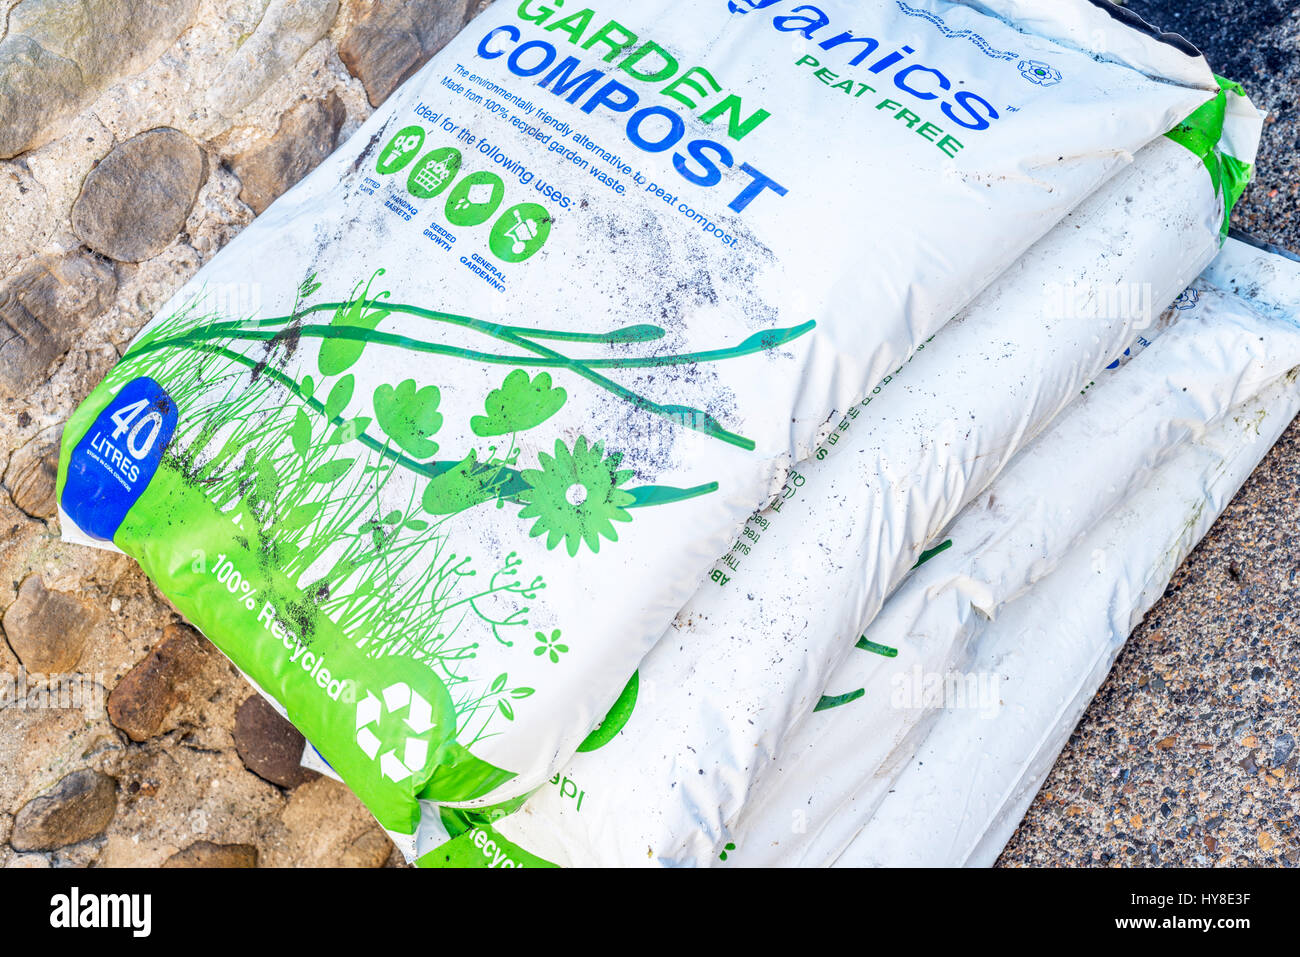 Compost - Stock Image